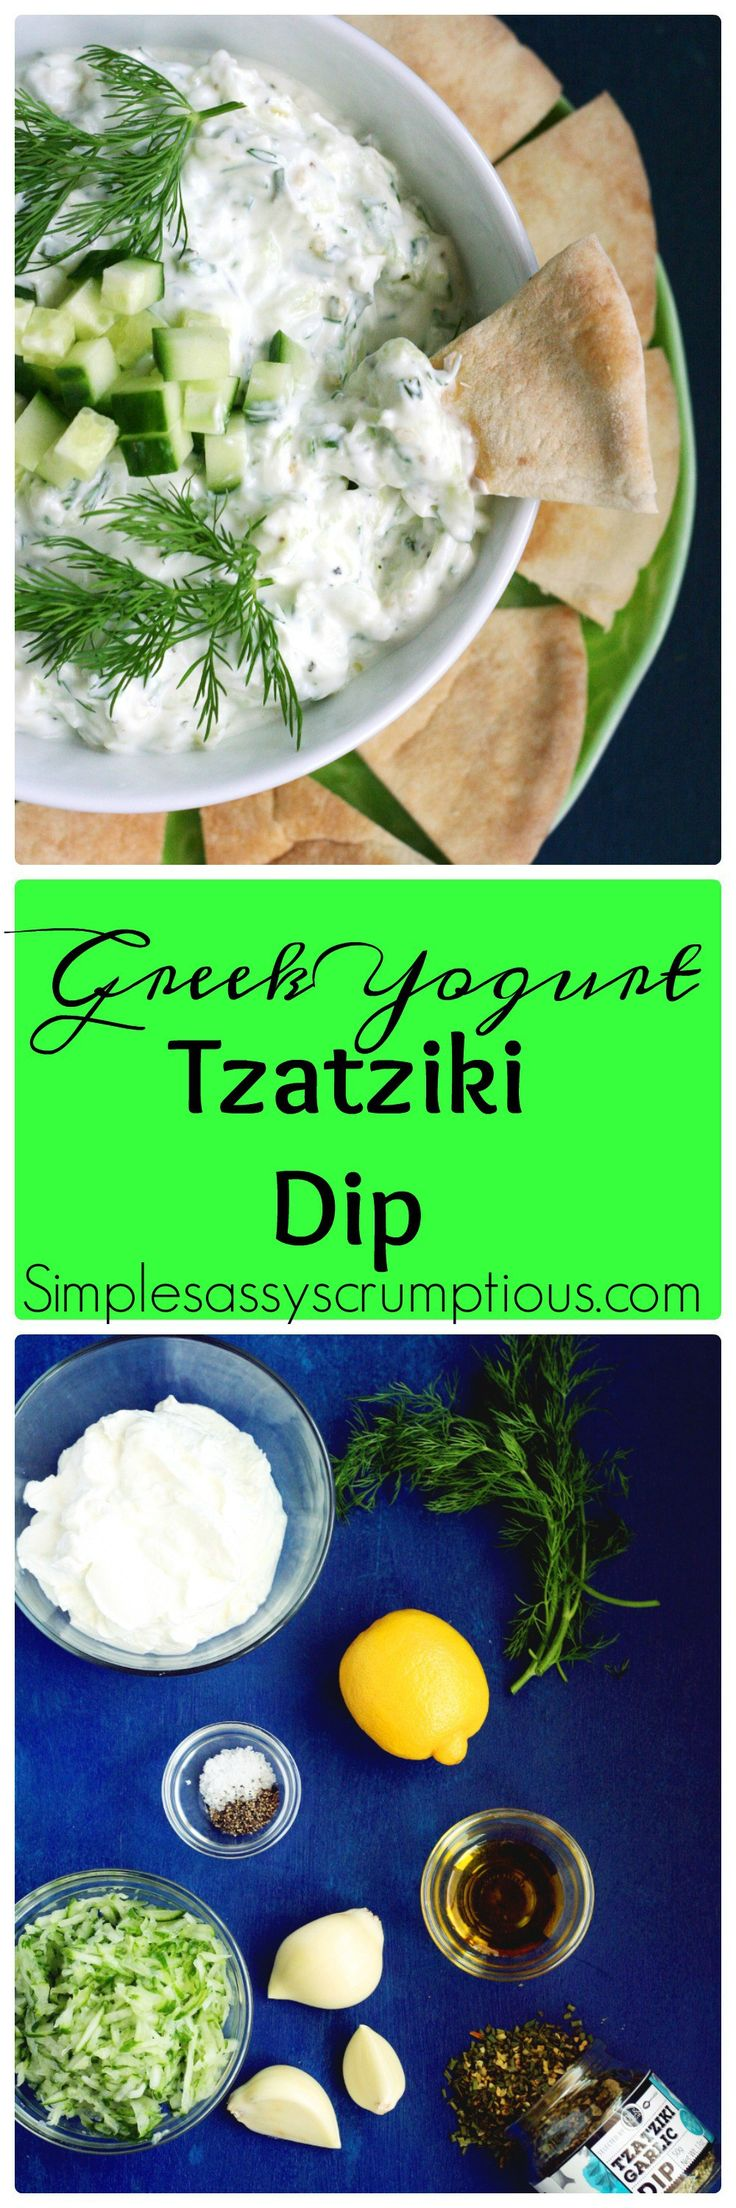 Greek Yogurt Tzatziki dip is a crisp refreshing dip that is super easy to make. Use Tzatziki as a dip with Pita bread or on grilled meats and burgers.